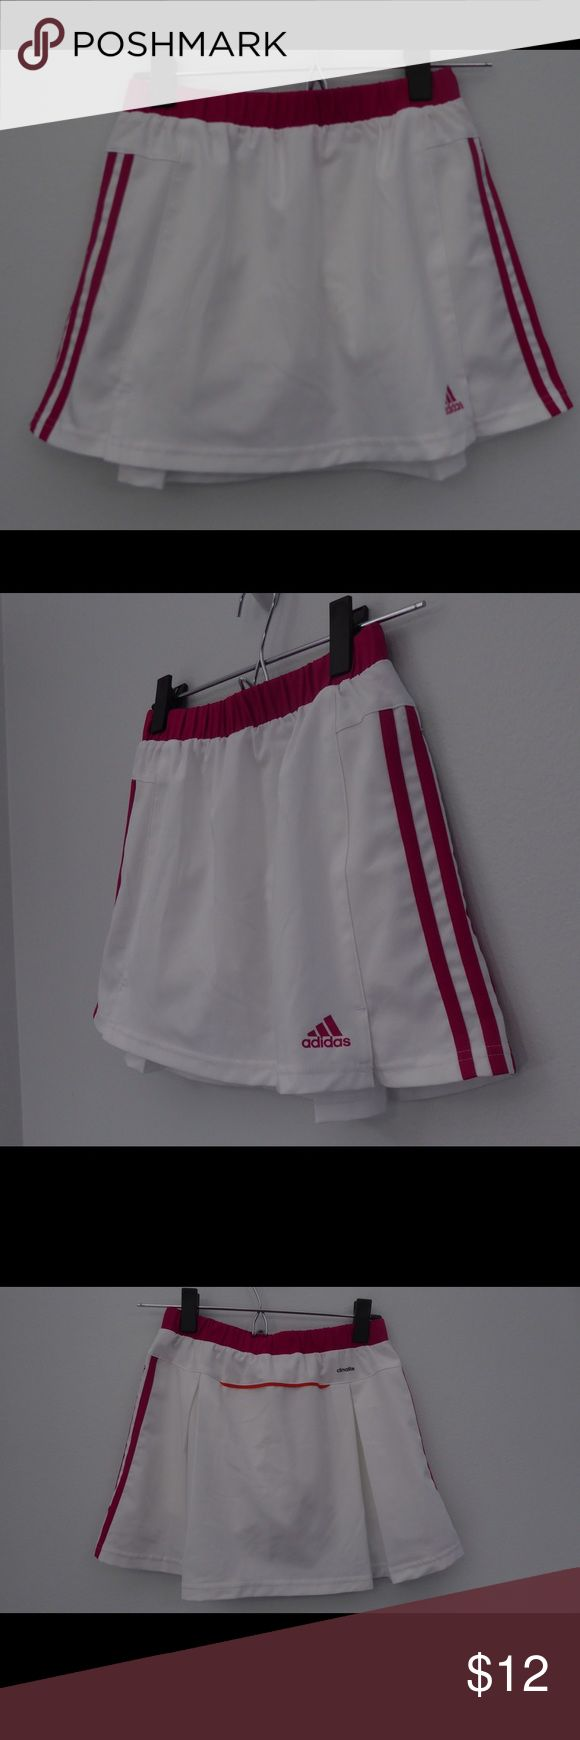 Girls Medium ADIDAS  Sports Skirt With Shorts Great active skirt for girls! White with pink stripes   Measurements: Medium - waist 11 flat with elastic, length 13. Nonsmoking home. Fast shipping! Adidas Bottoms Skorts